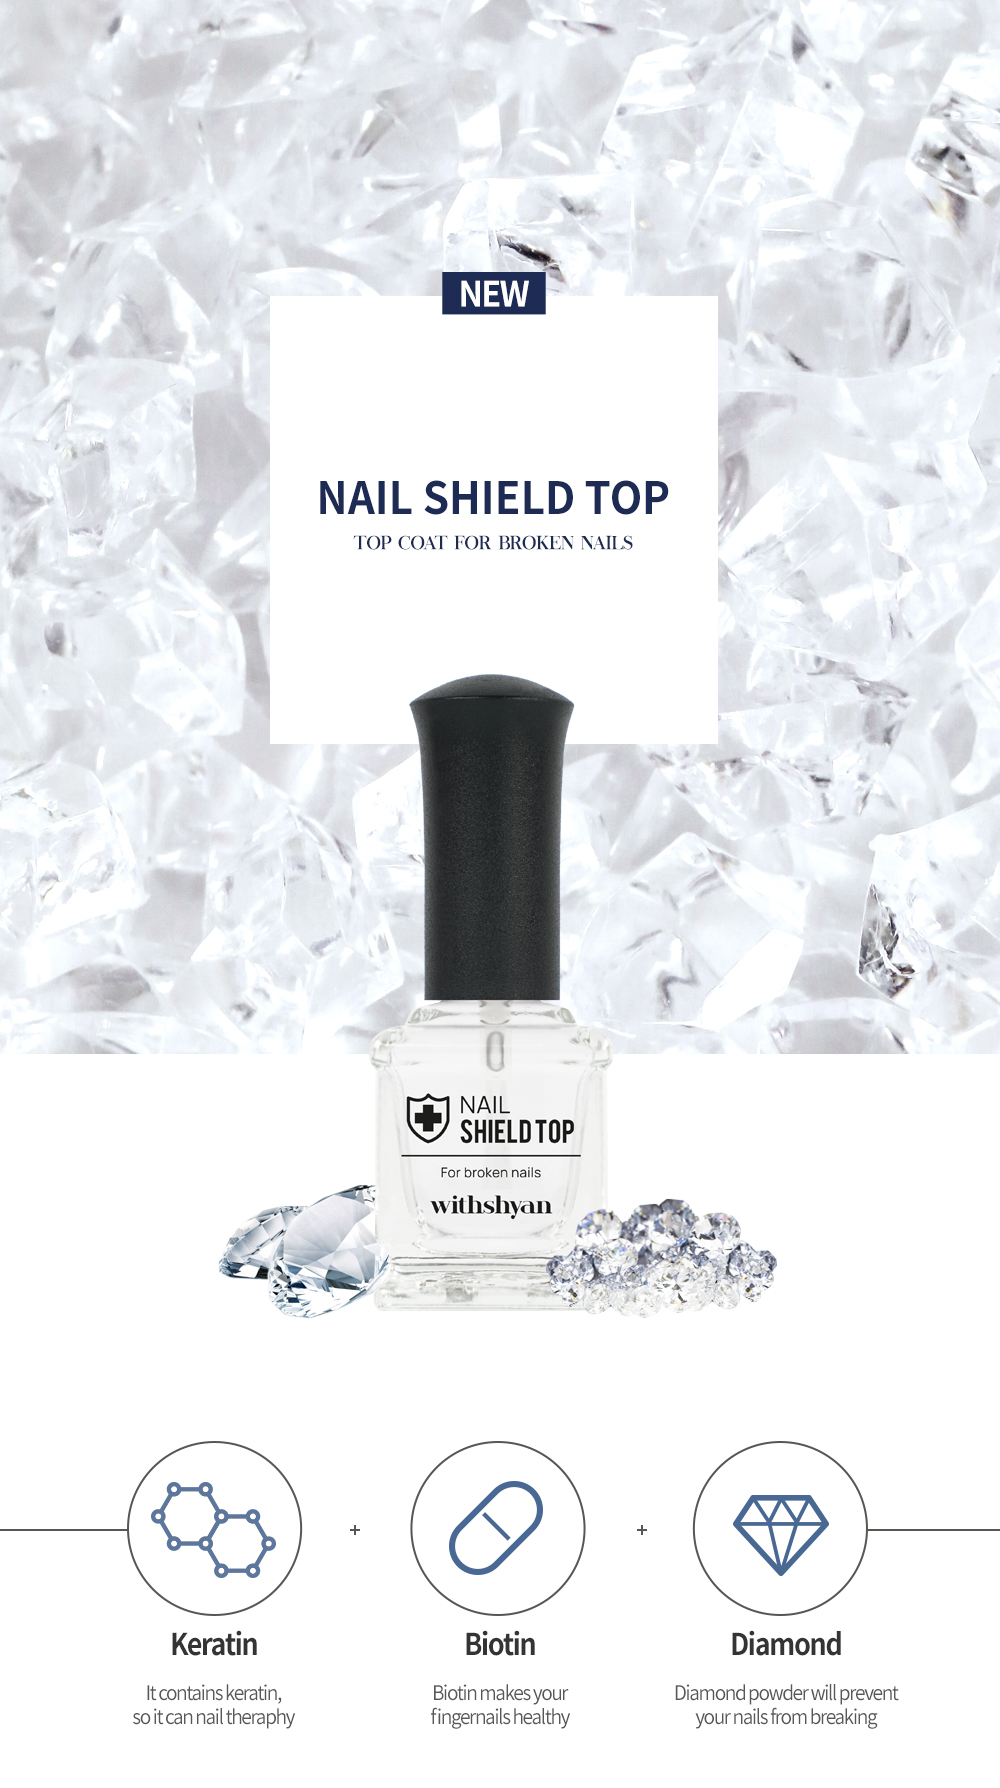 Feature of Nail Shield Top Coat